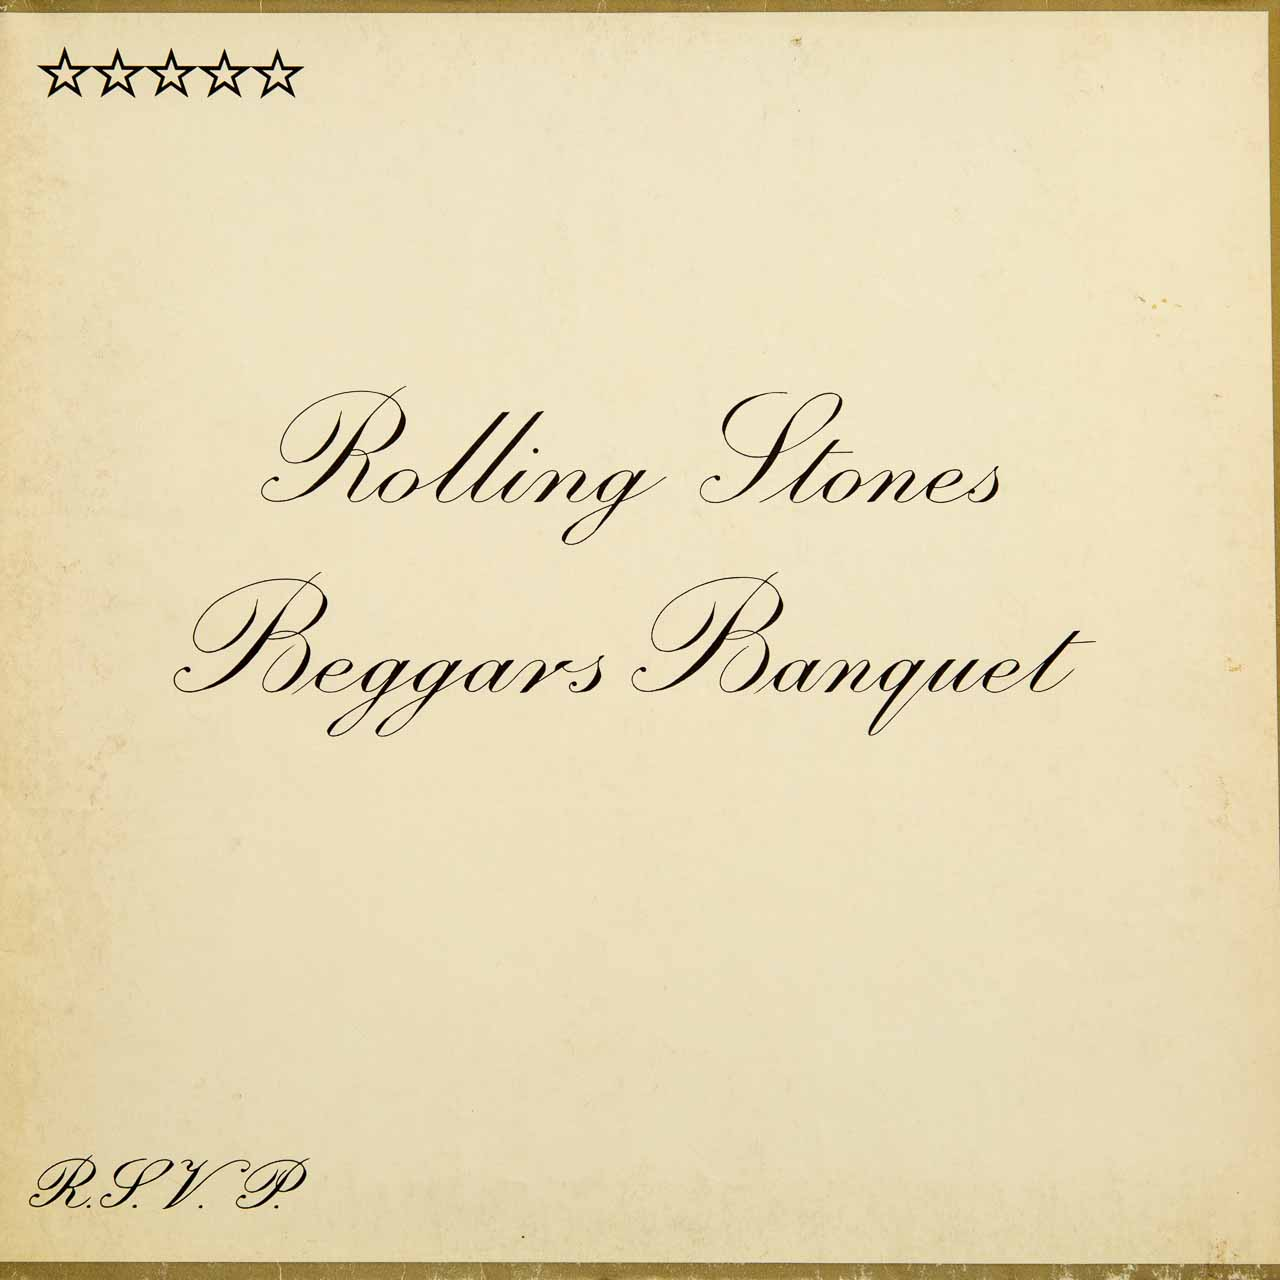 Rolling Stones - Beggars Banquet - Cover Front